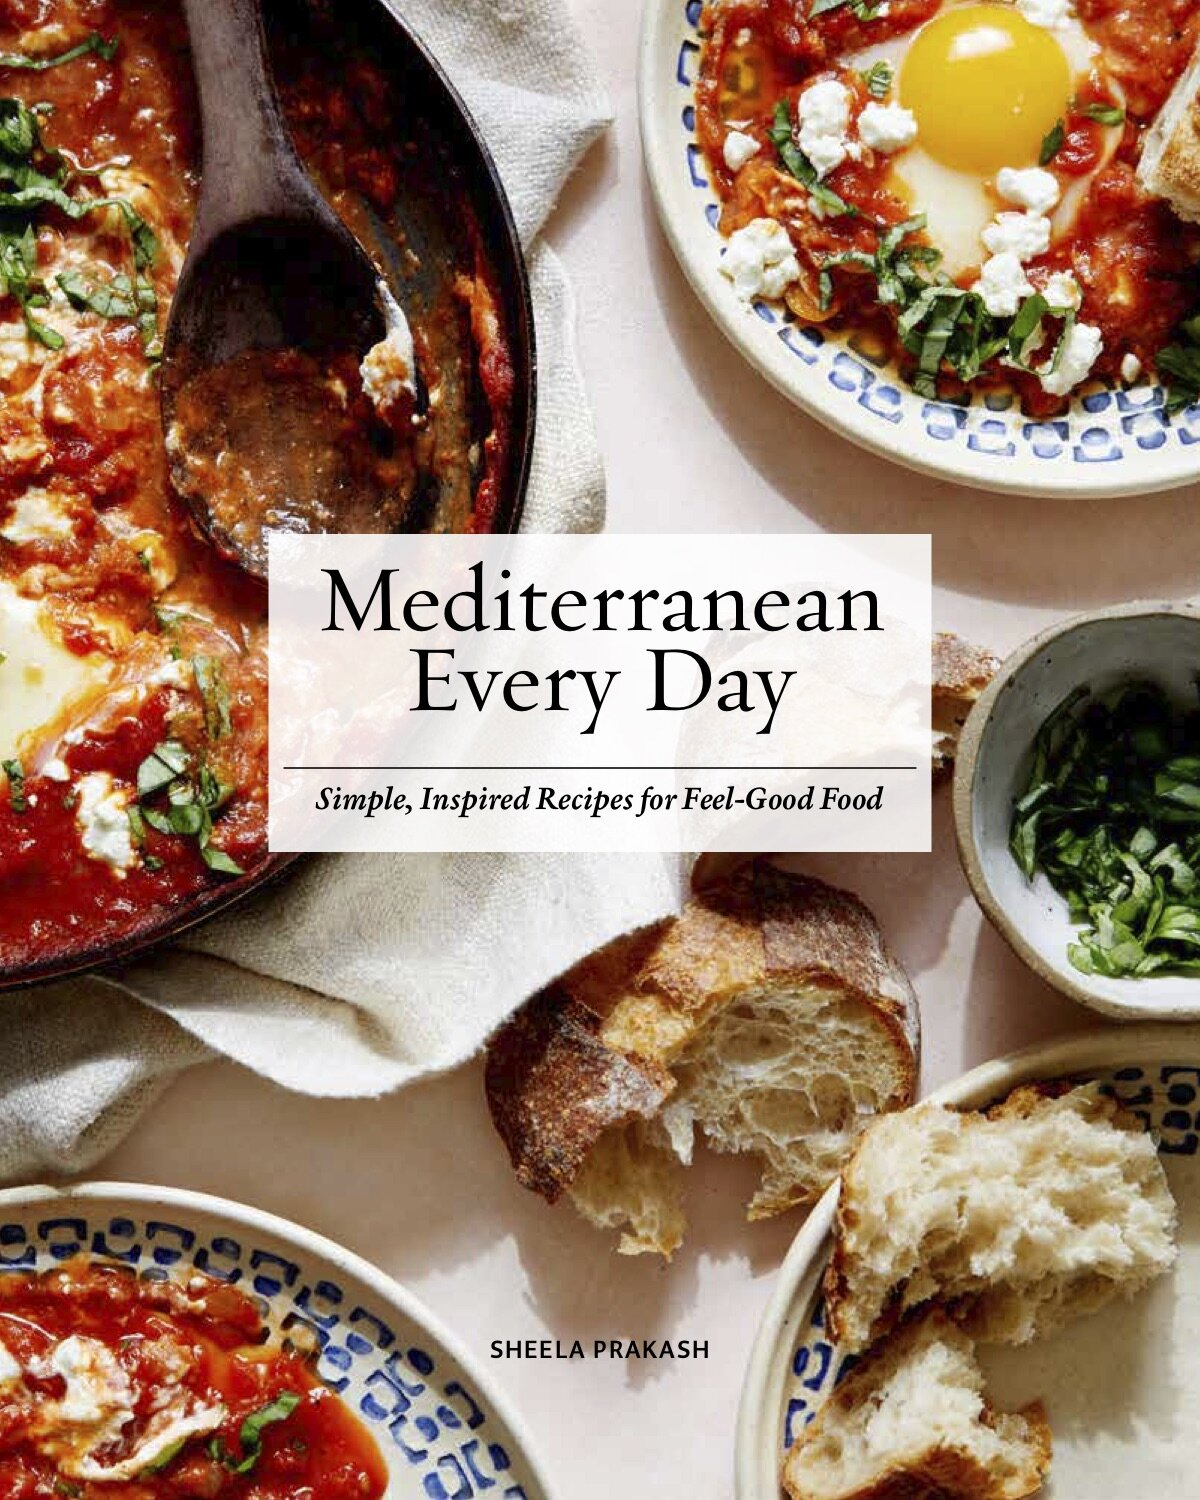 Mediterranean Every Day: Simple, Inspired Recipes for Feel-Good Food by Sheela Prakash | featured on Didn't I Just Feed You, a food podcast for parents